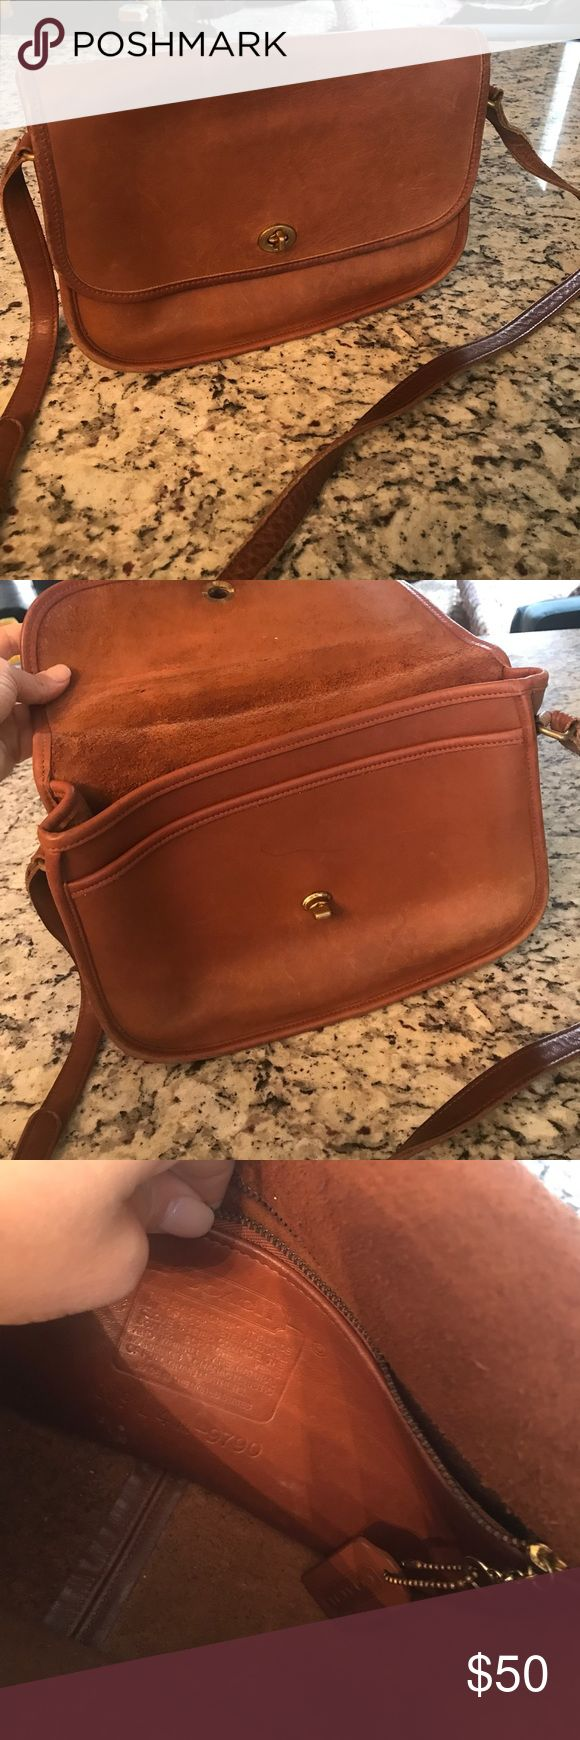 Vintage camel coach bag Vintage camel coach bag. Great size. Shoulder strap. A zip pocket and two other pockets. There are two slight pen marks on inside, but overall good condition Coach Bags Crossbody Bags